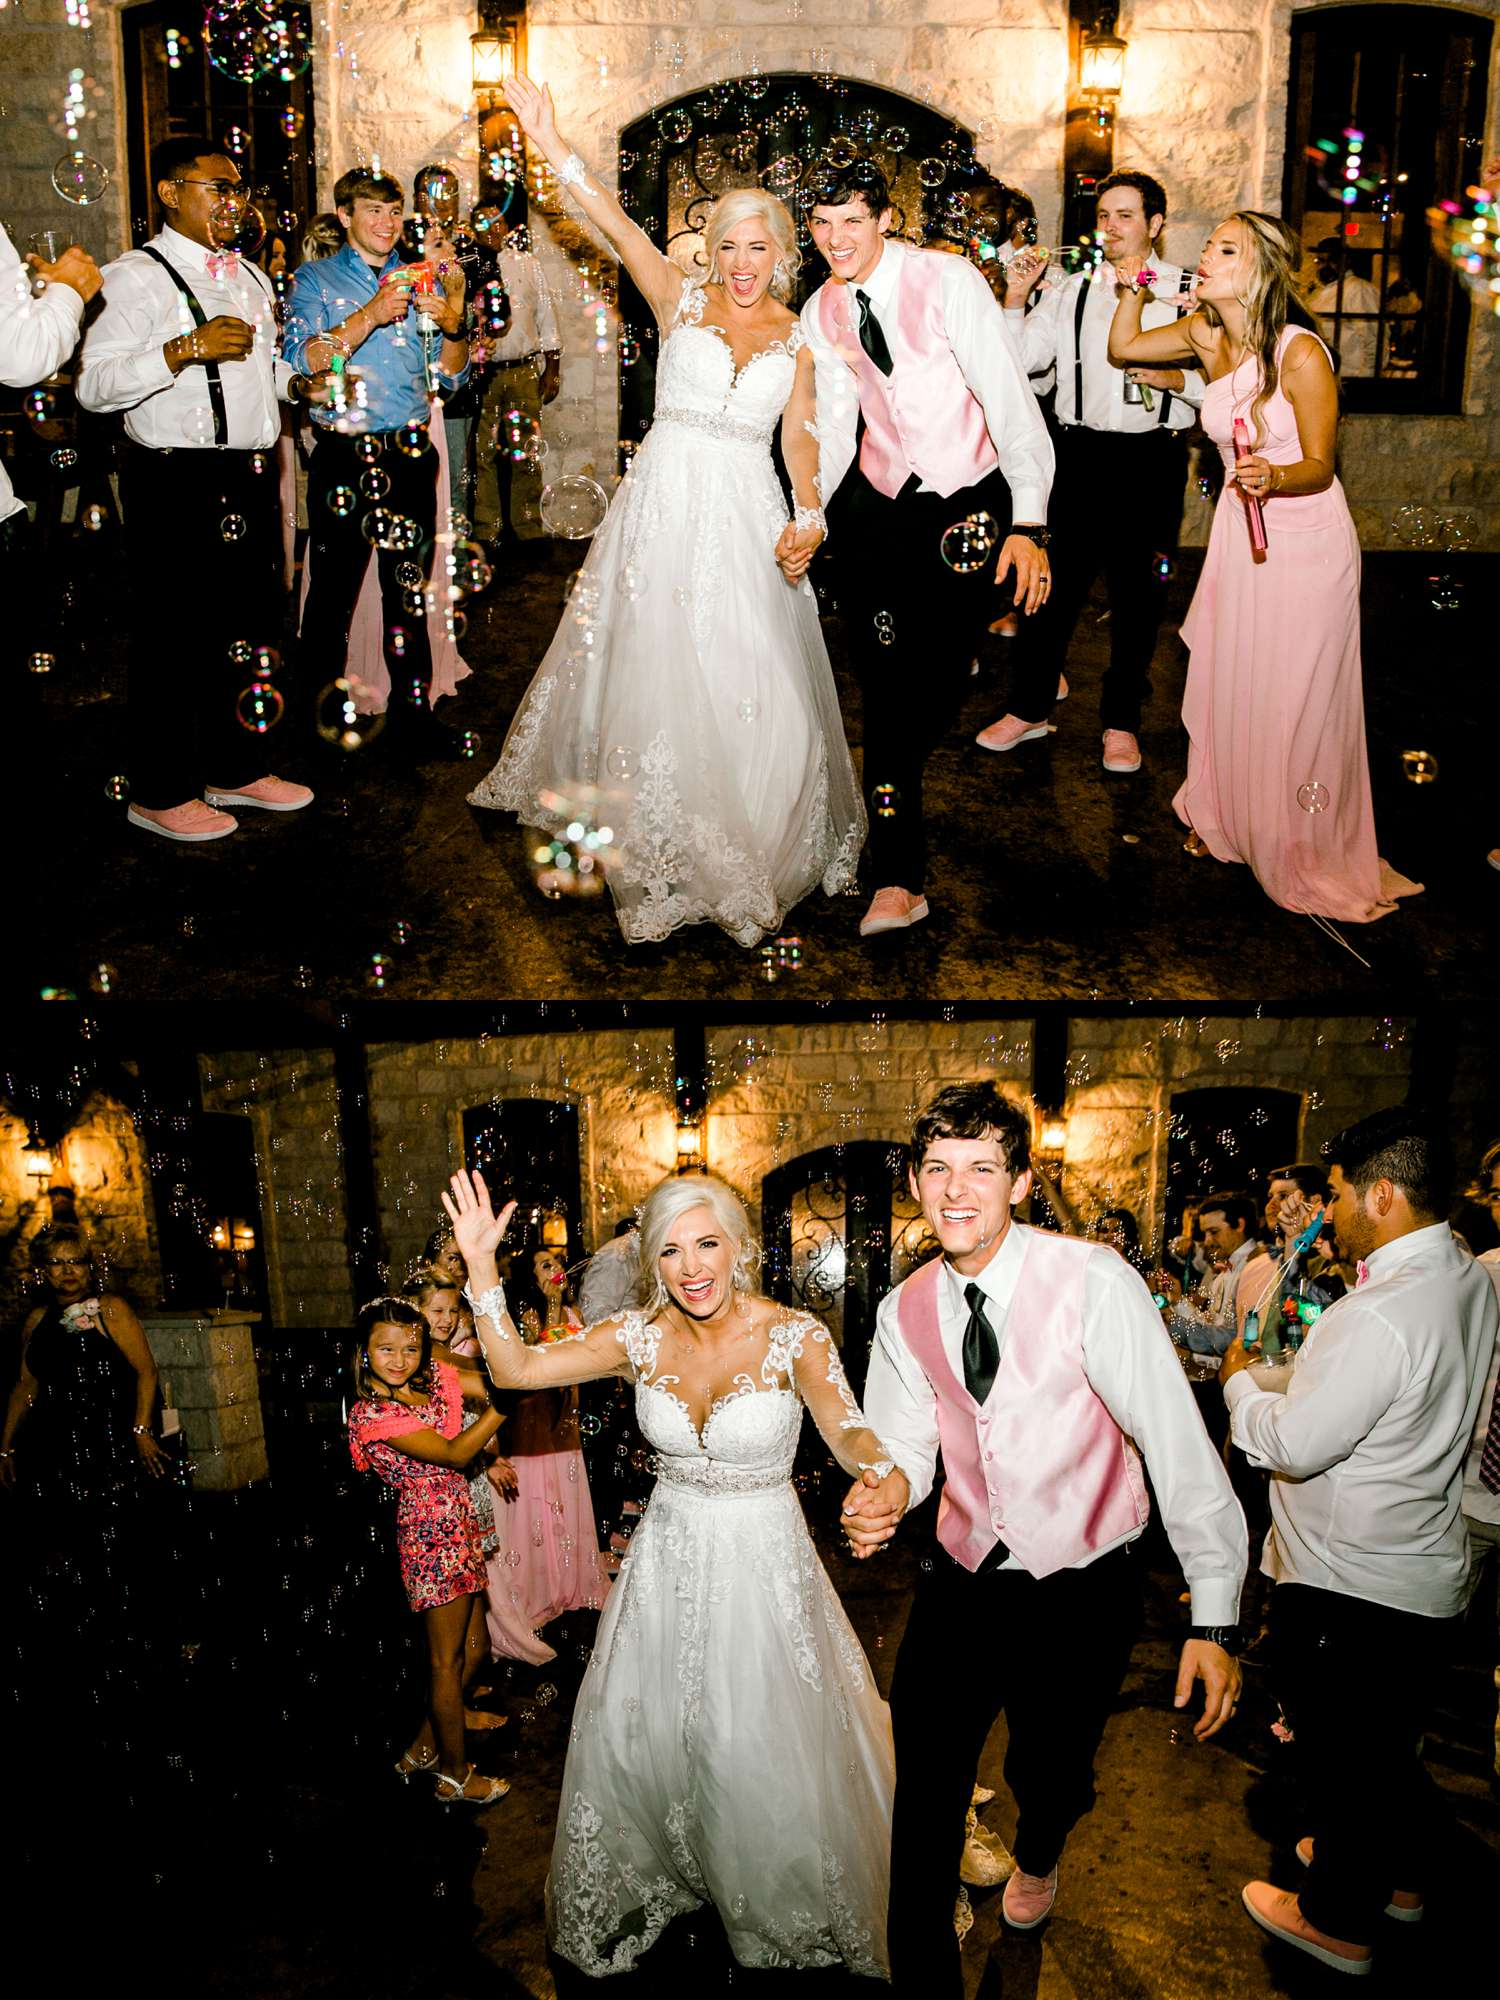 JESSICA+LYLE+NEEL+THE_SPRINGS_EVENTS_WEDDING_OKLAHOMA_ALLEEJ_PHOTOGRAPHER_0177.jpg